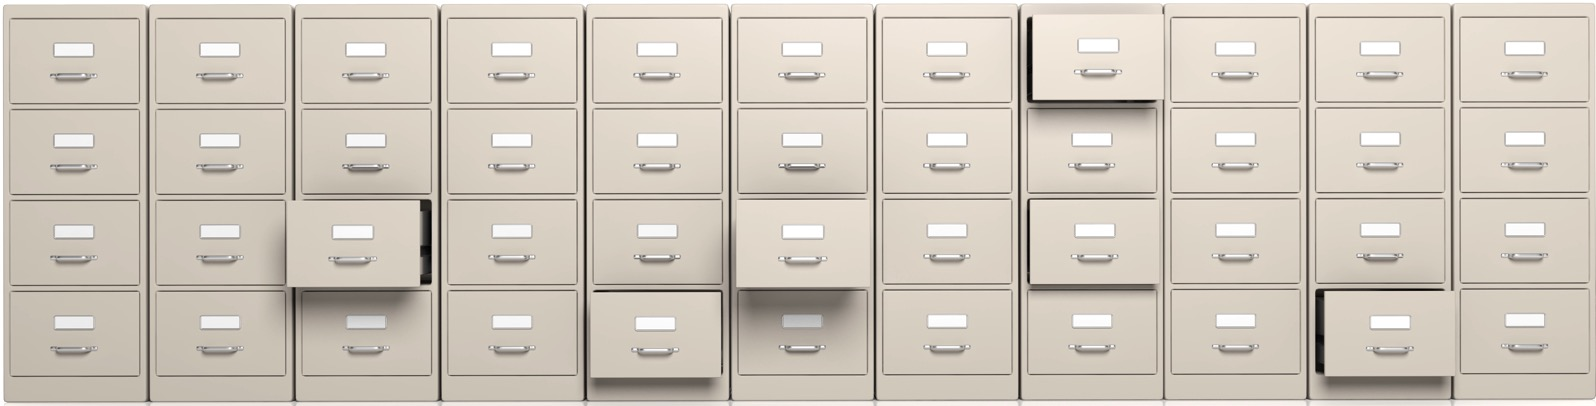 Filing cabinets and open drawers 3d illustration P5PUV4A